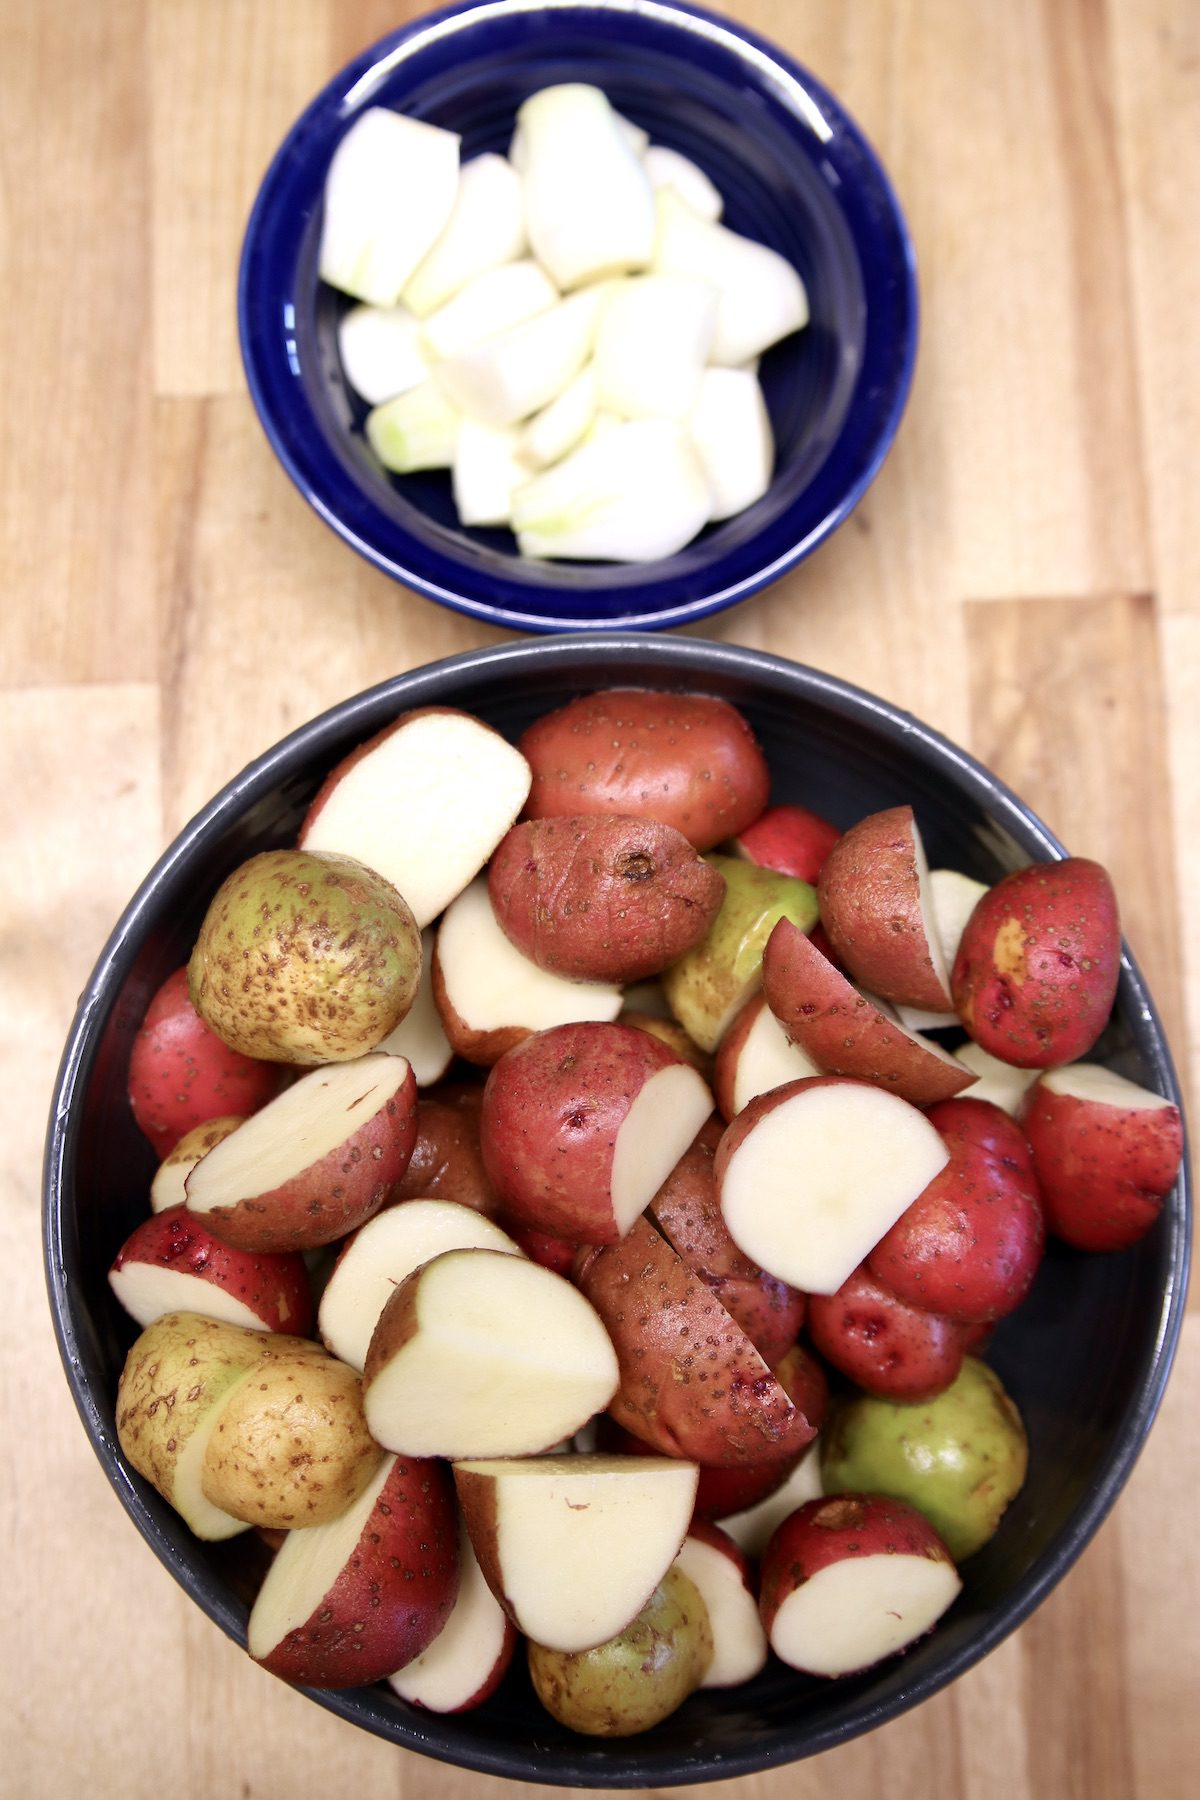 small bowl of onions, large bowl of cut up baby potatoes